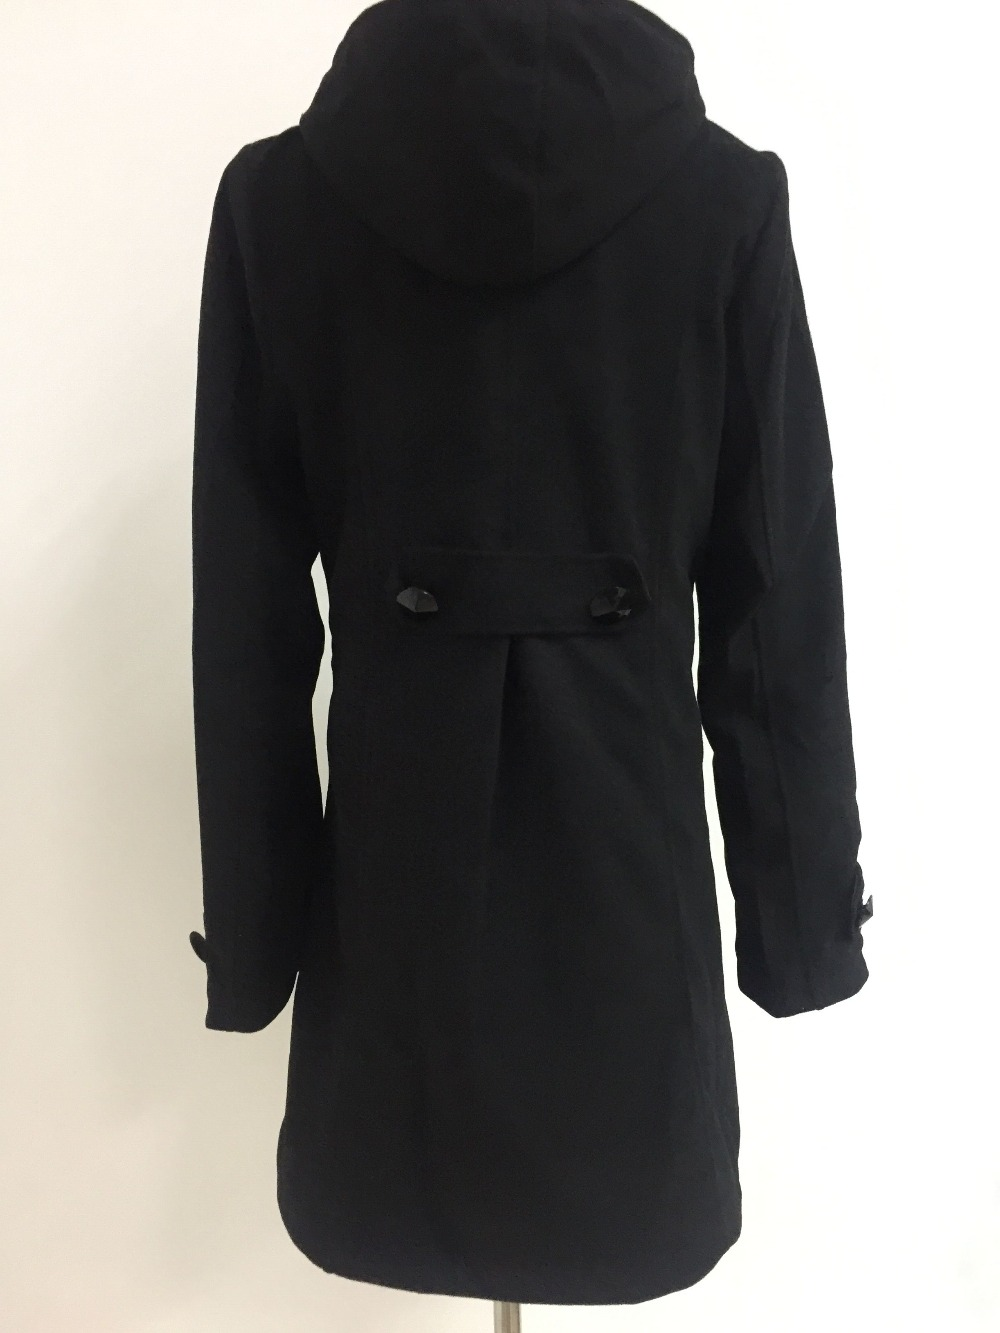 Elegant Coat for Women Pockets Casual Hooded Wool Coat and Jacket Solid Autumn Winter Women Clothes 2018 Plus Size 3XL 4XL 13